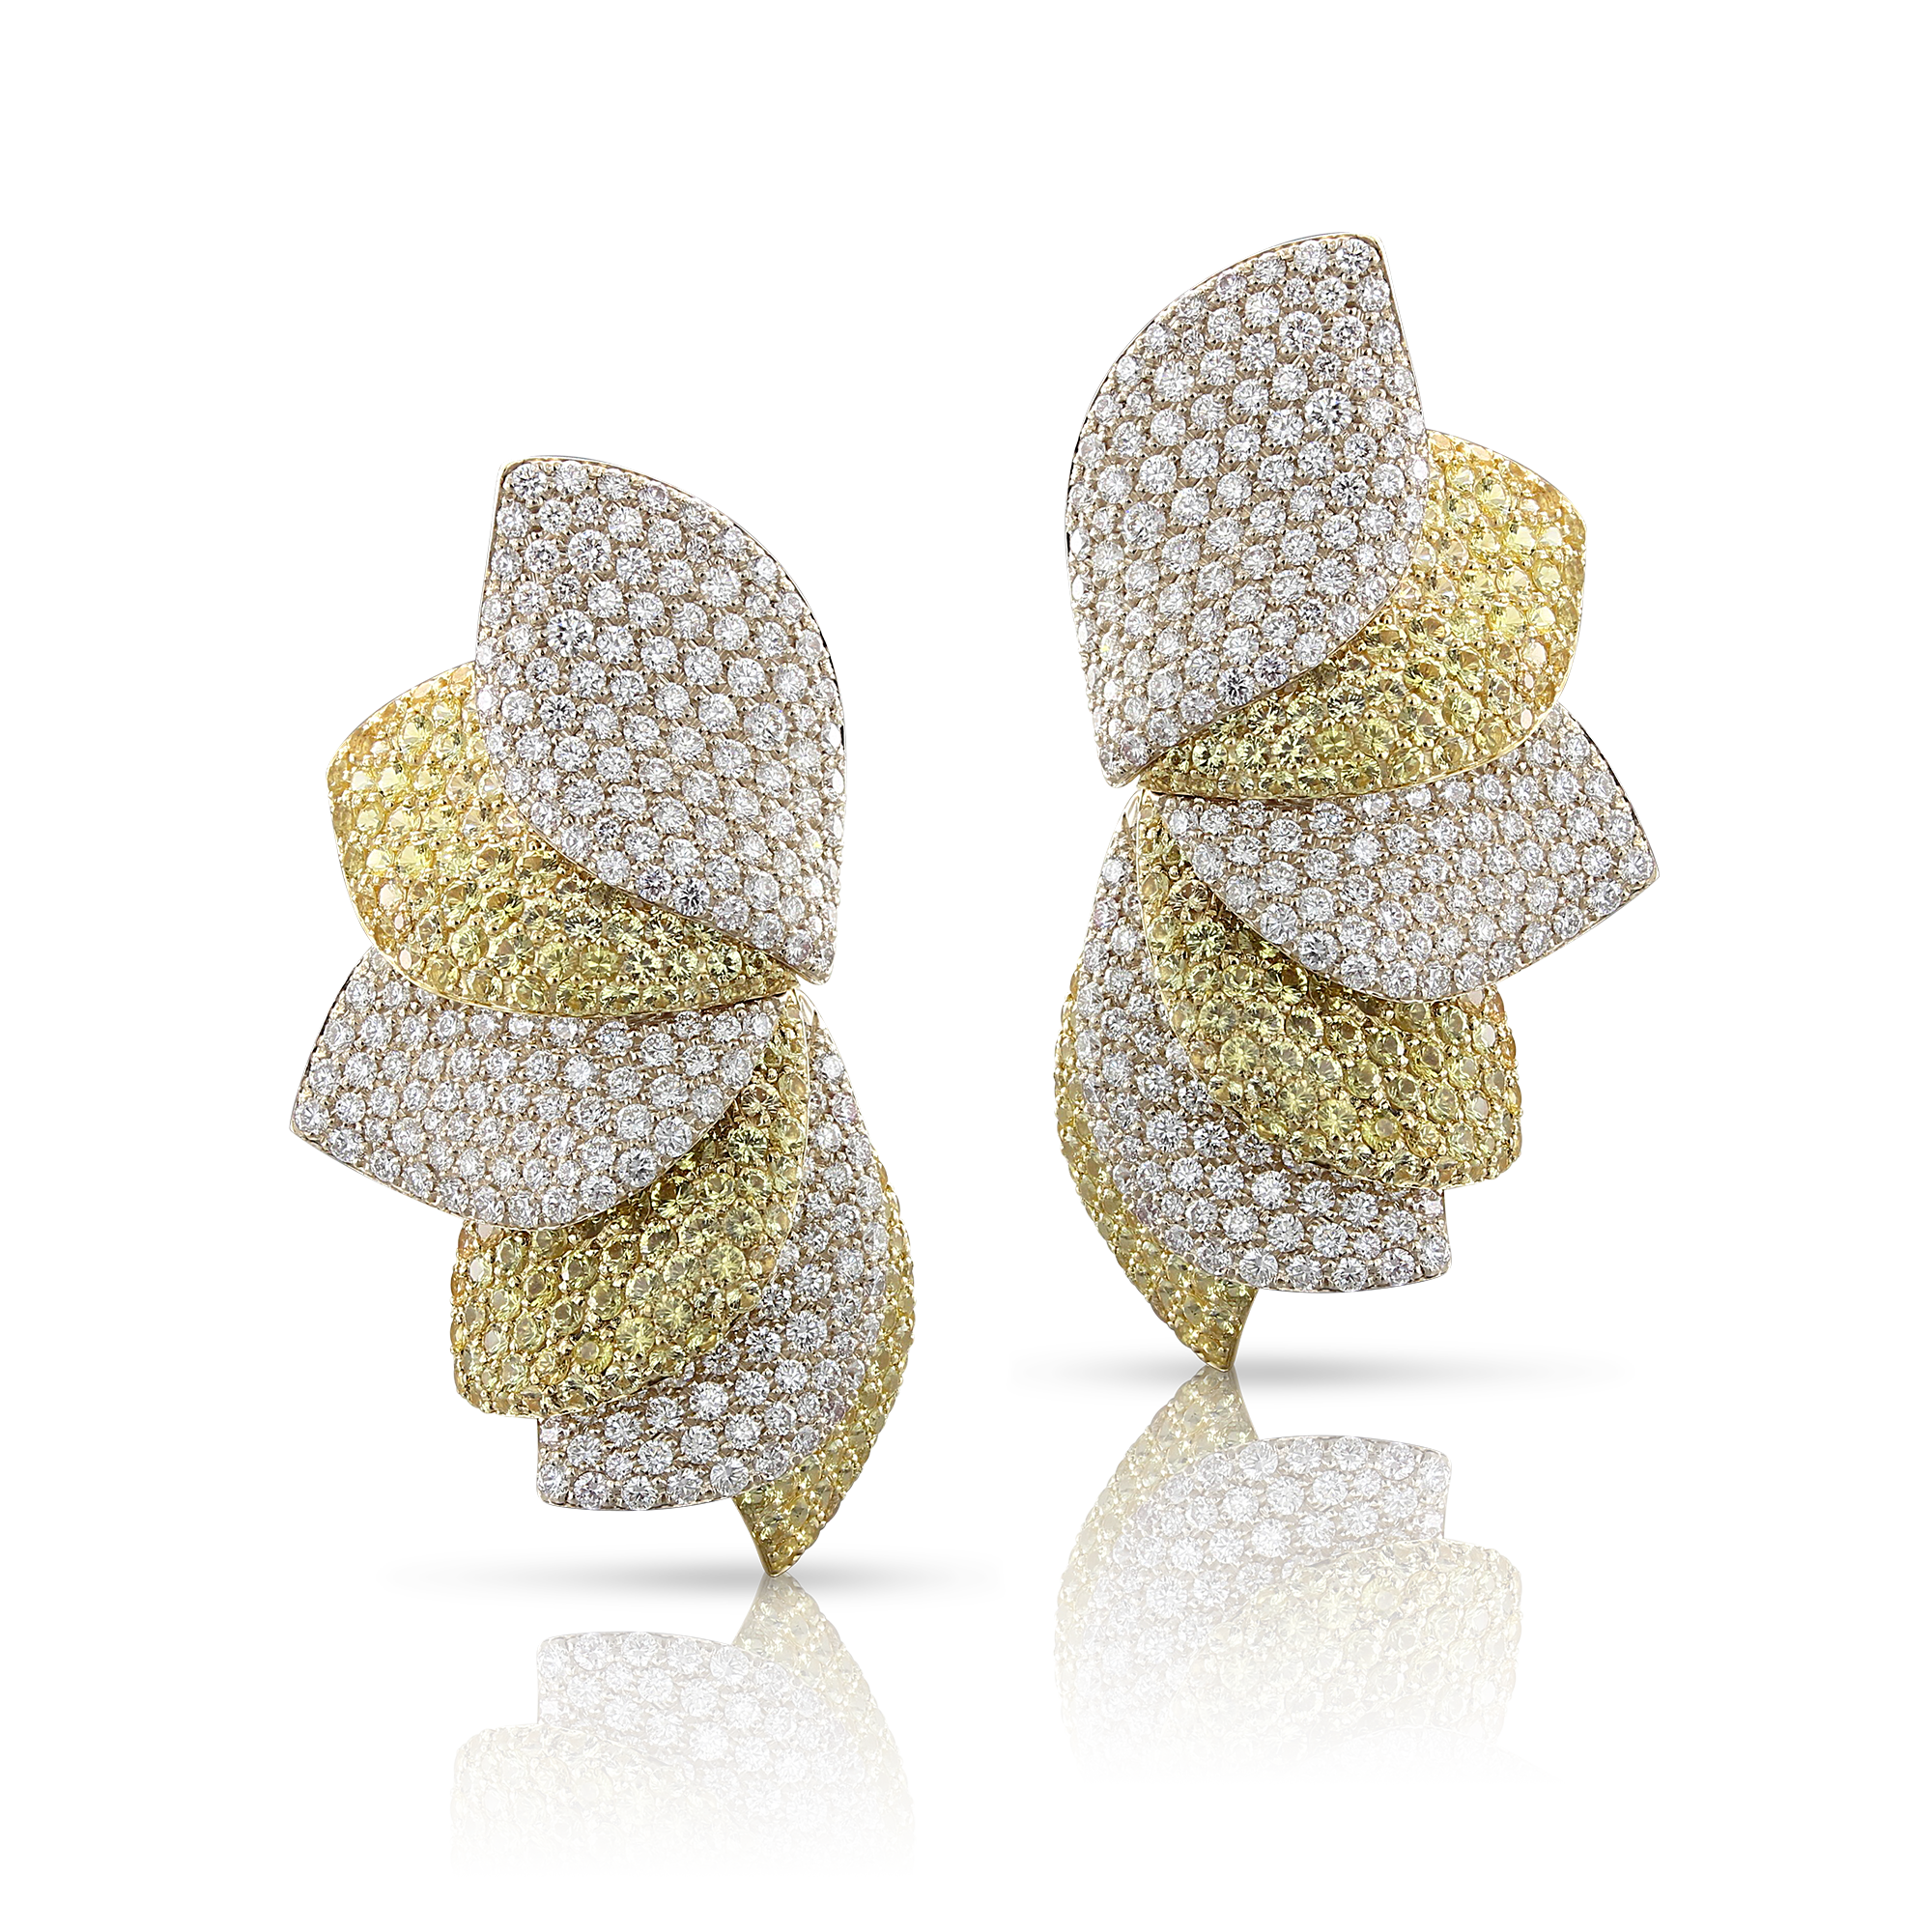 18k White and Yellow Gold Aleluiá Earrings with White Diamonds and Yellow Sapphires